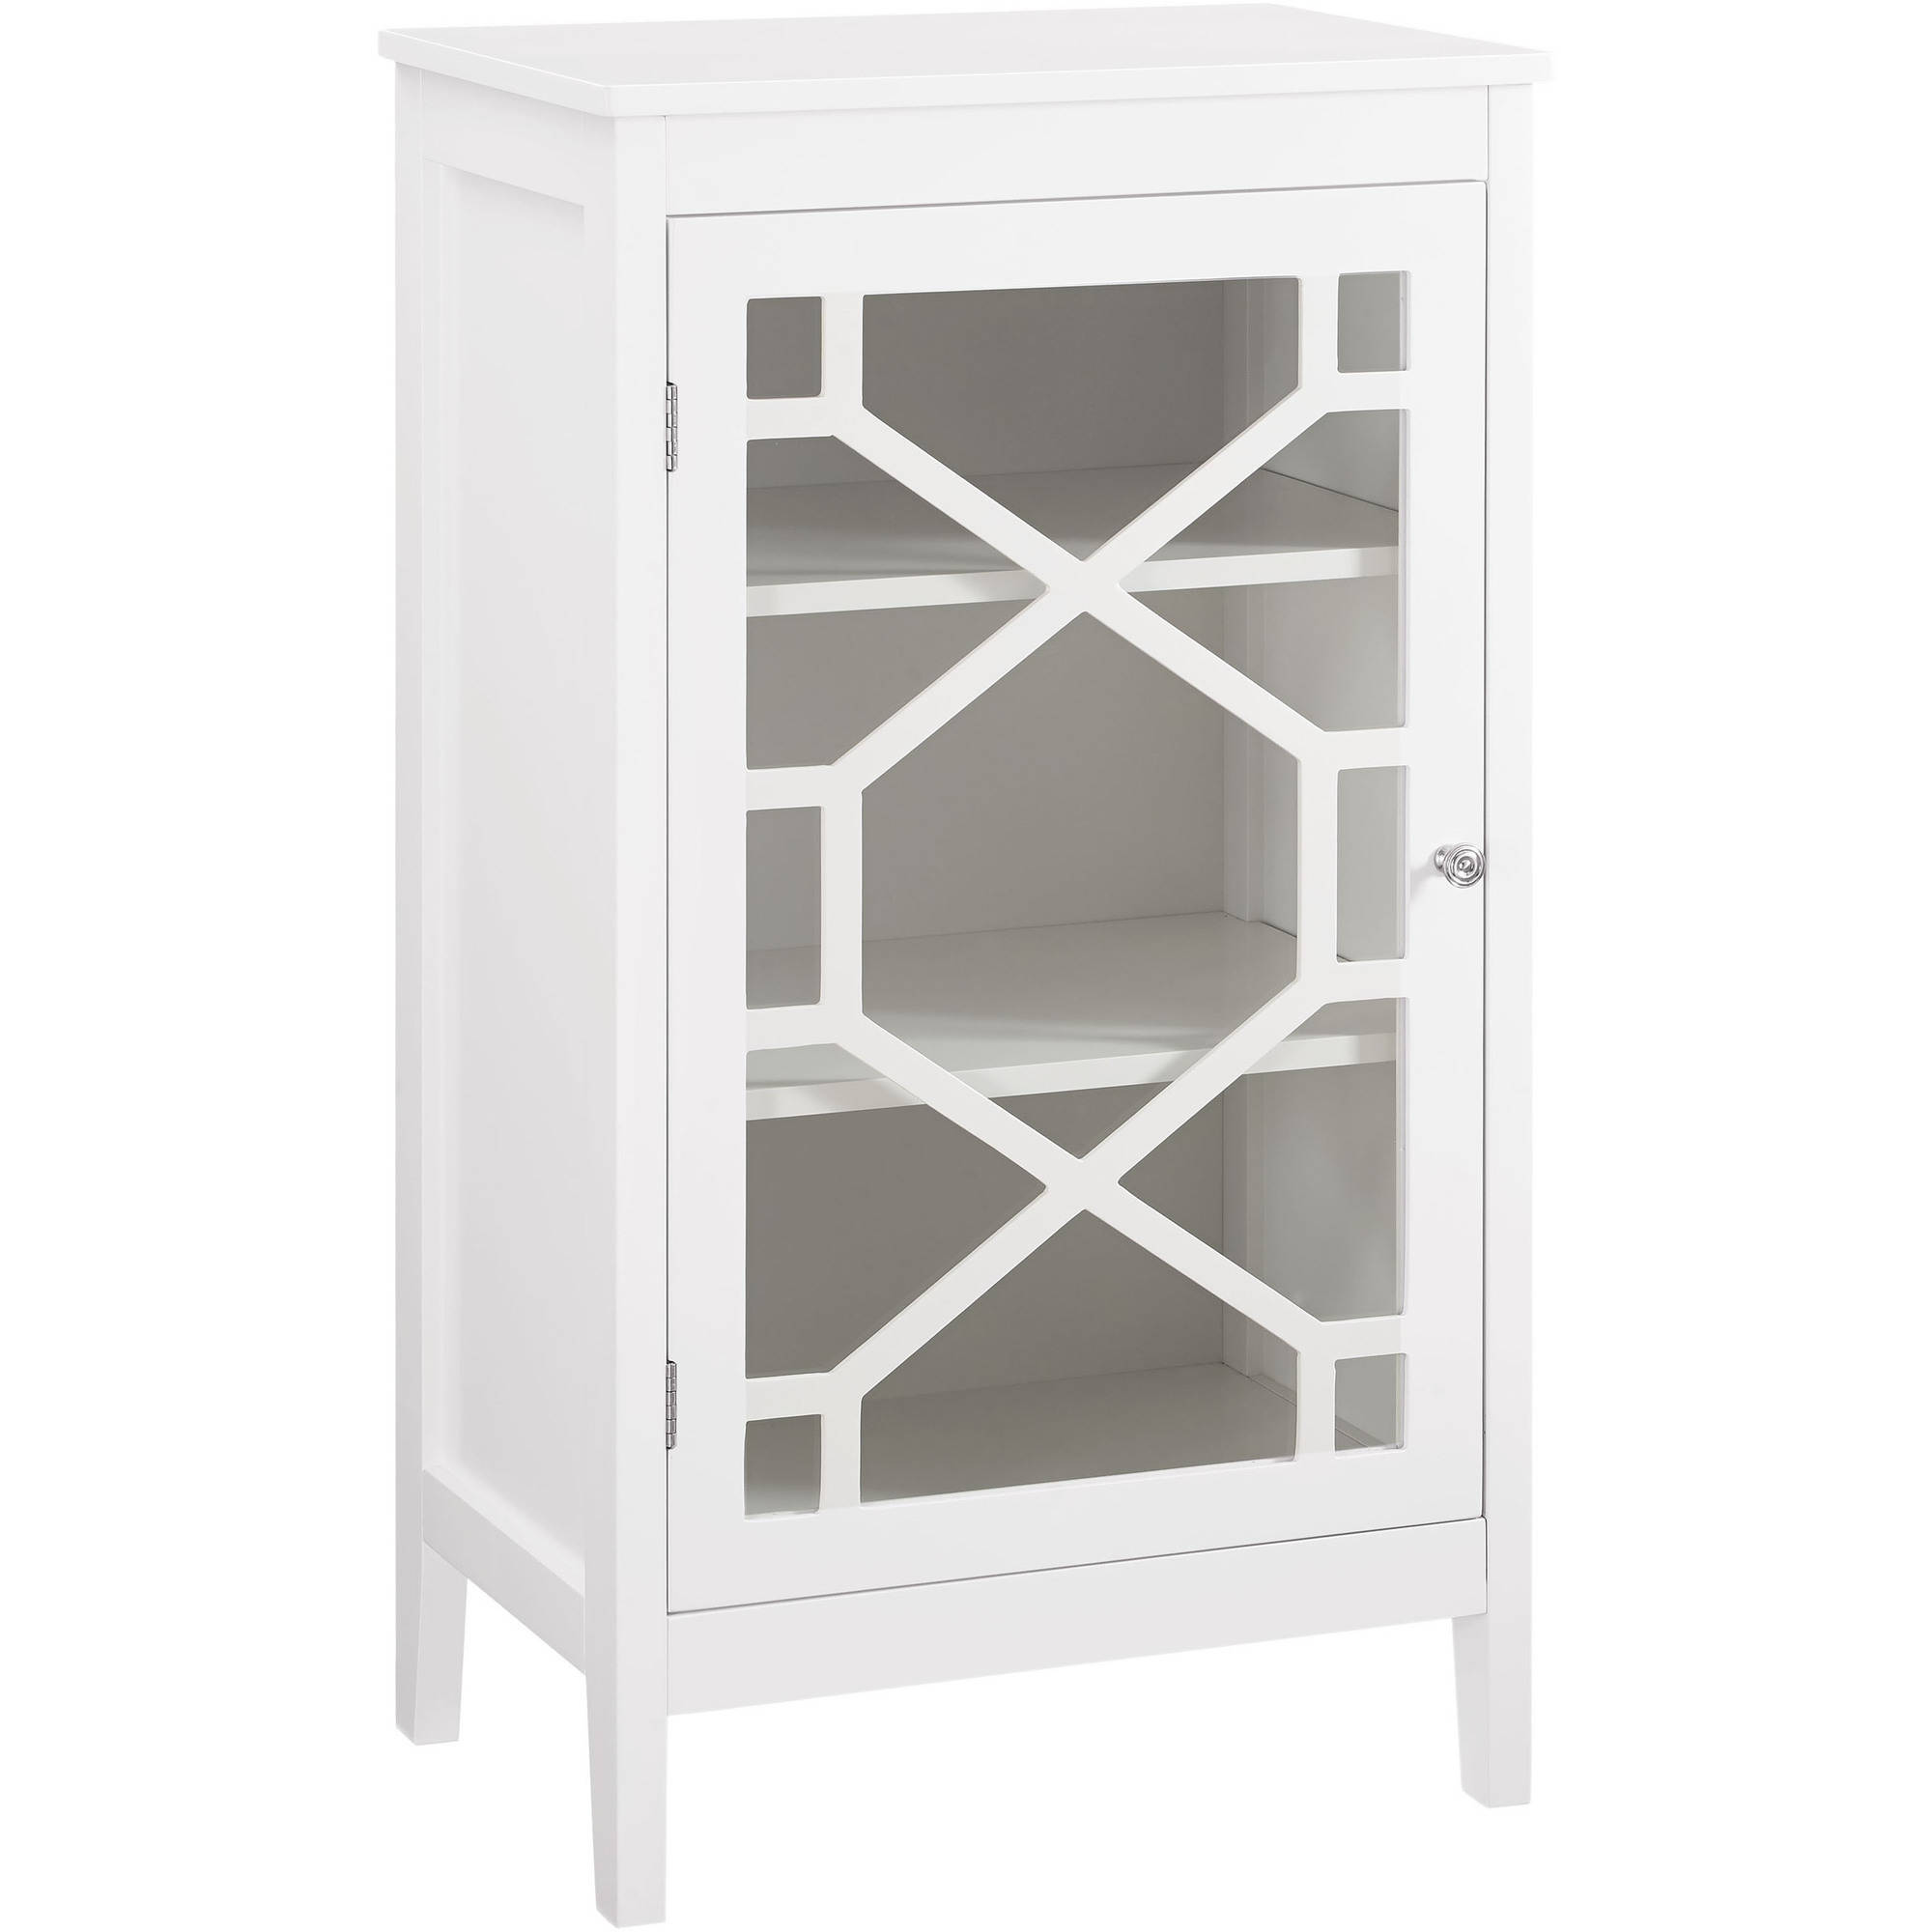 Linon Home Fetti Small Accent Cabinet, White